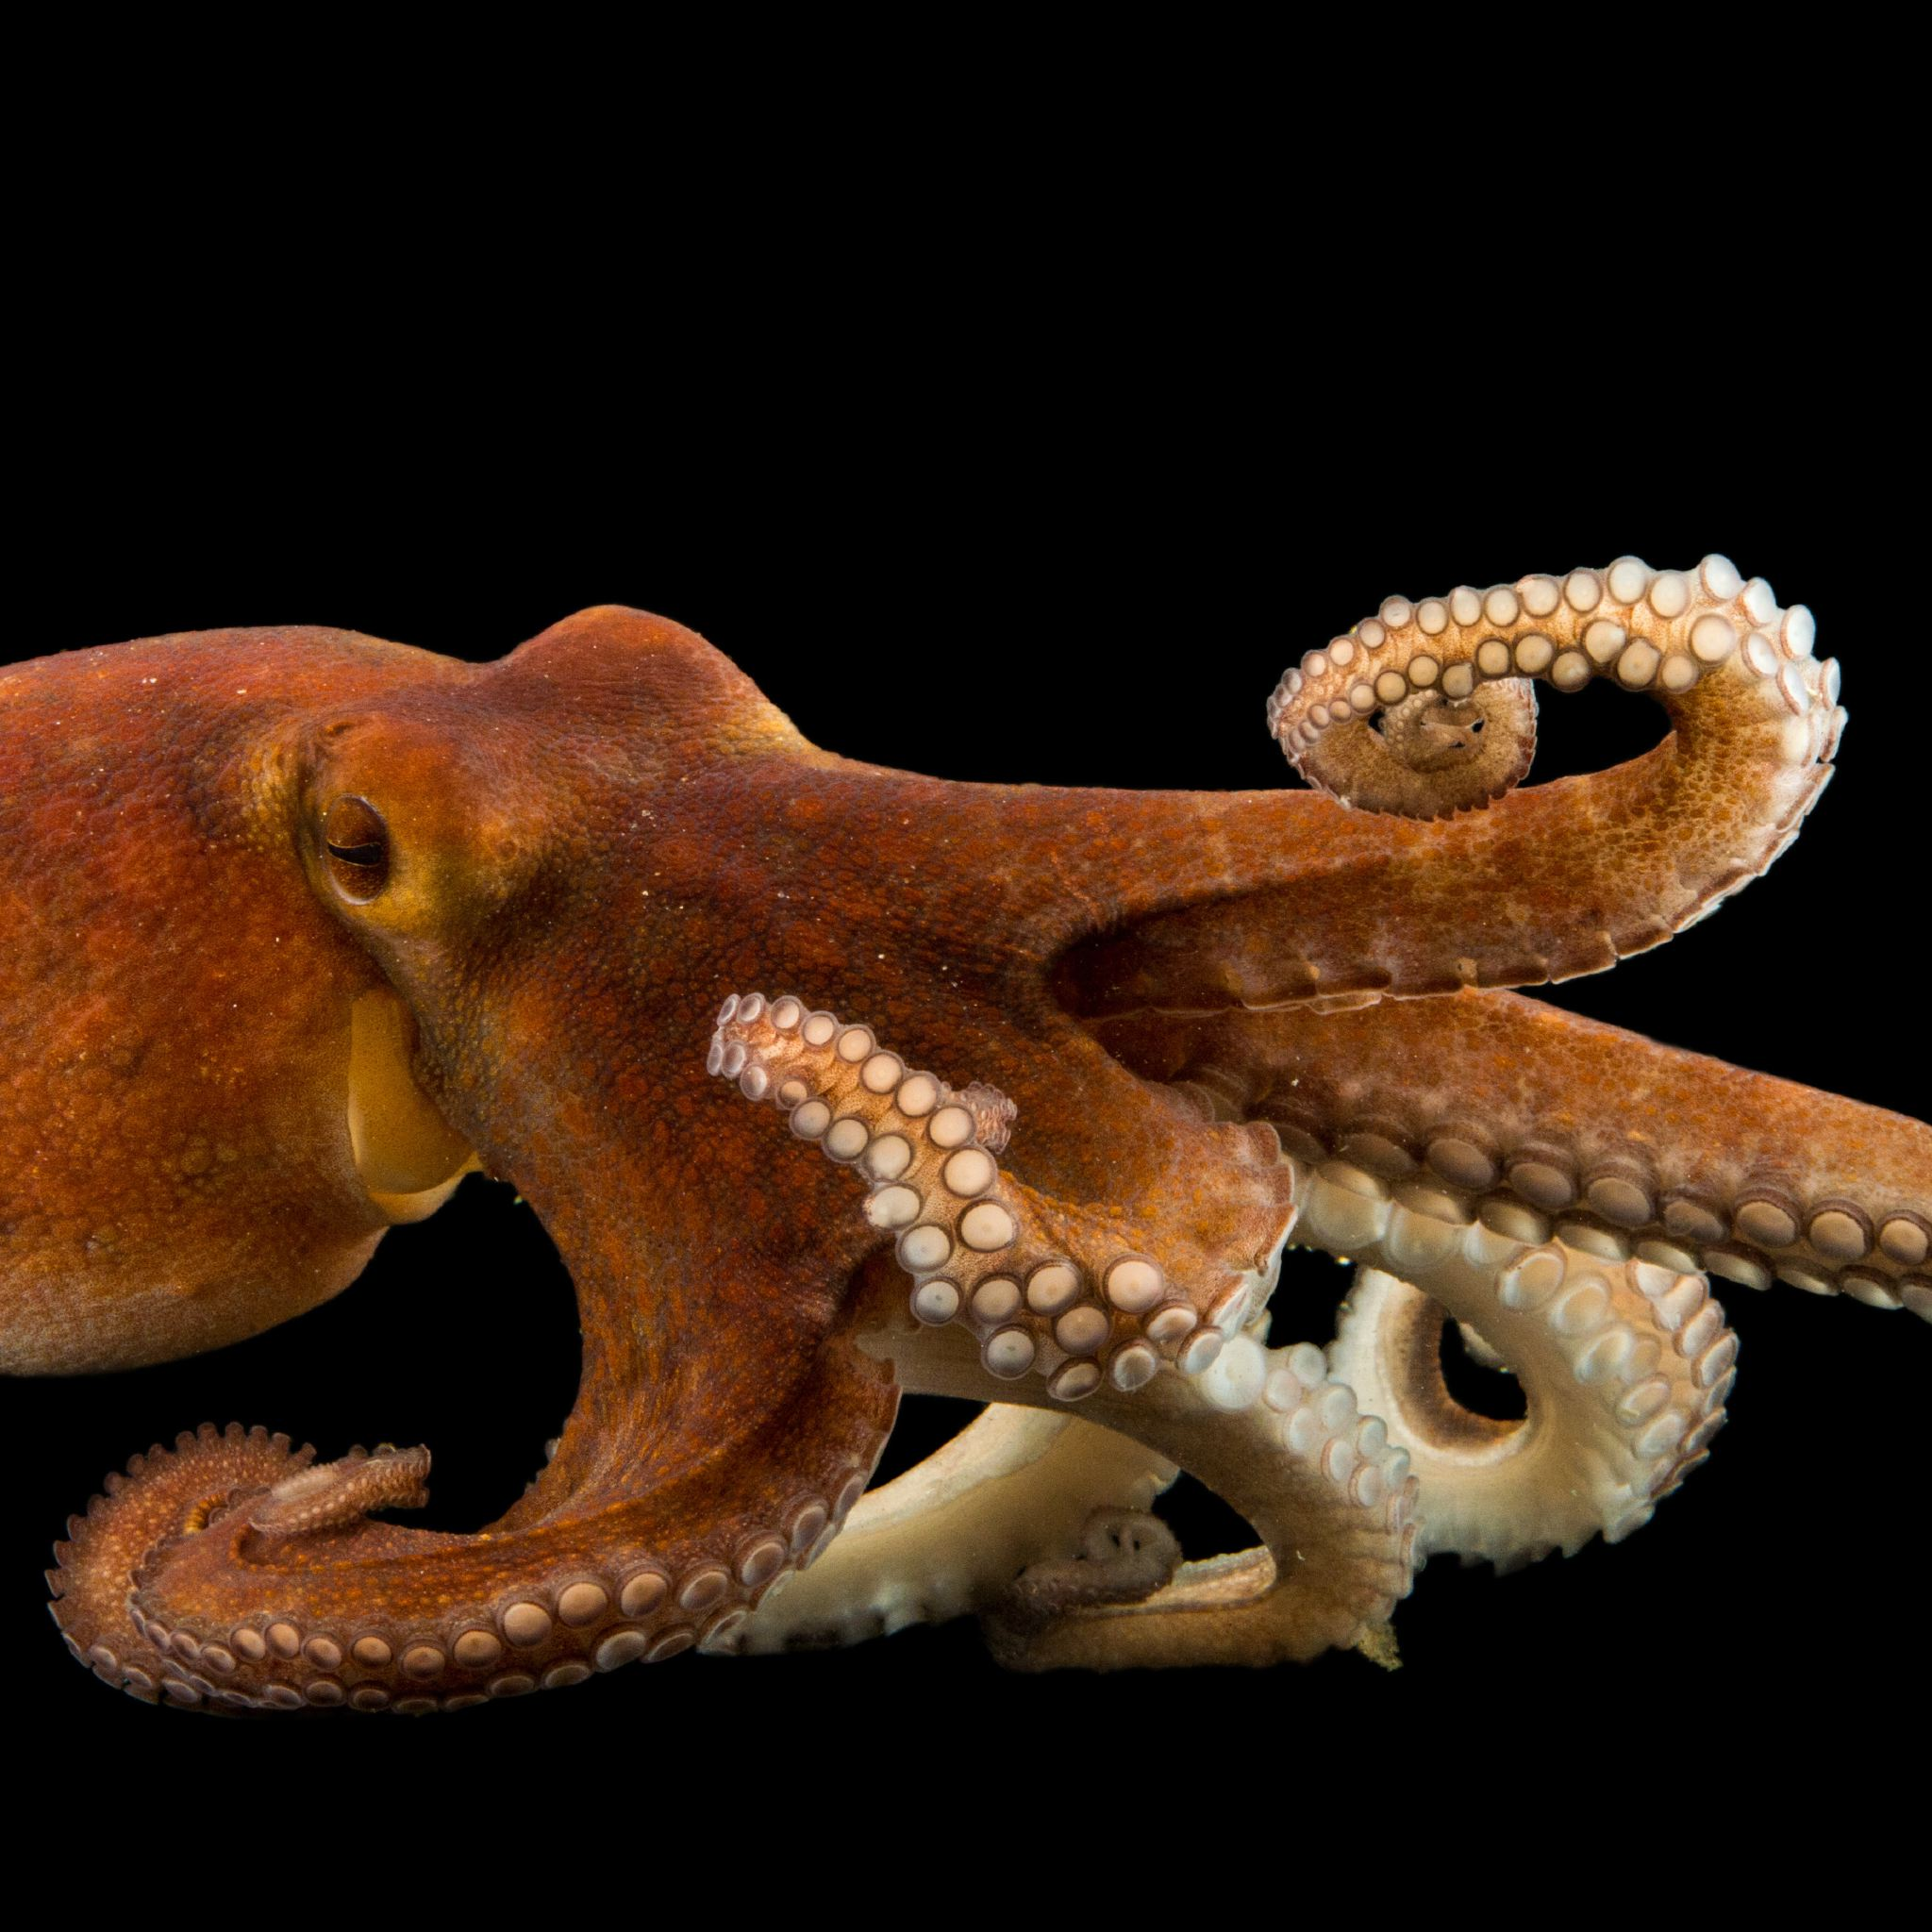 HQ Octopus Wallpapers | File 389.14Kb